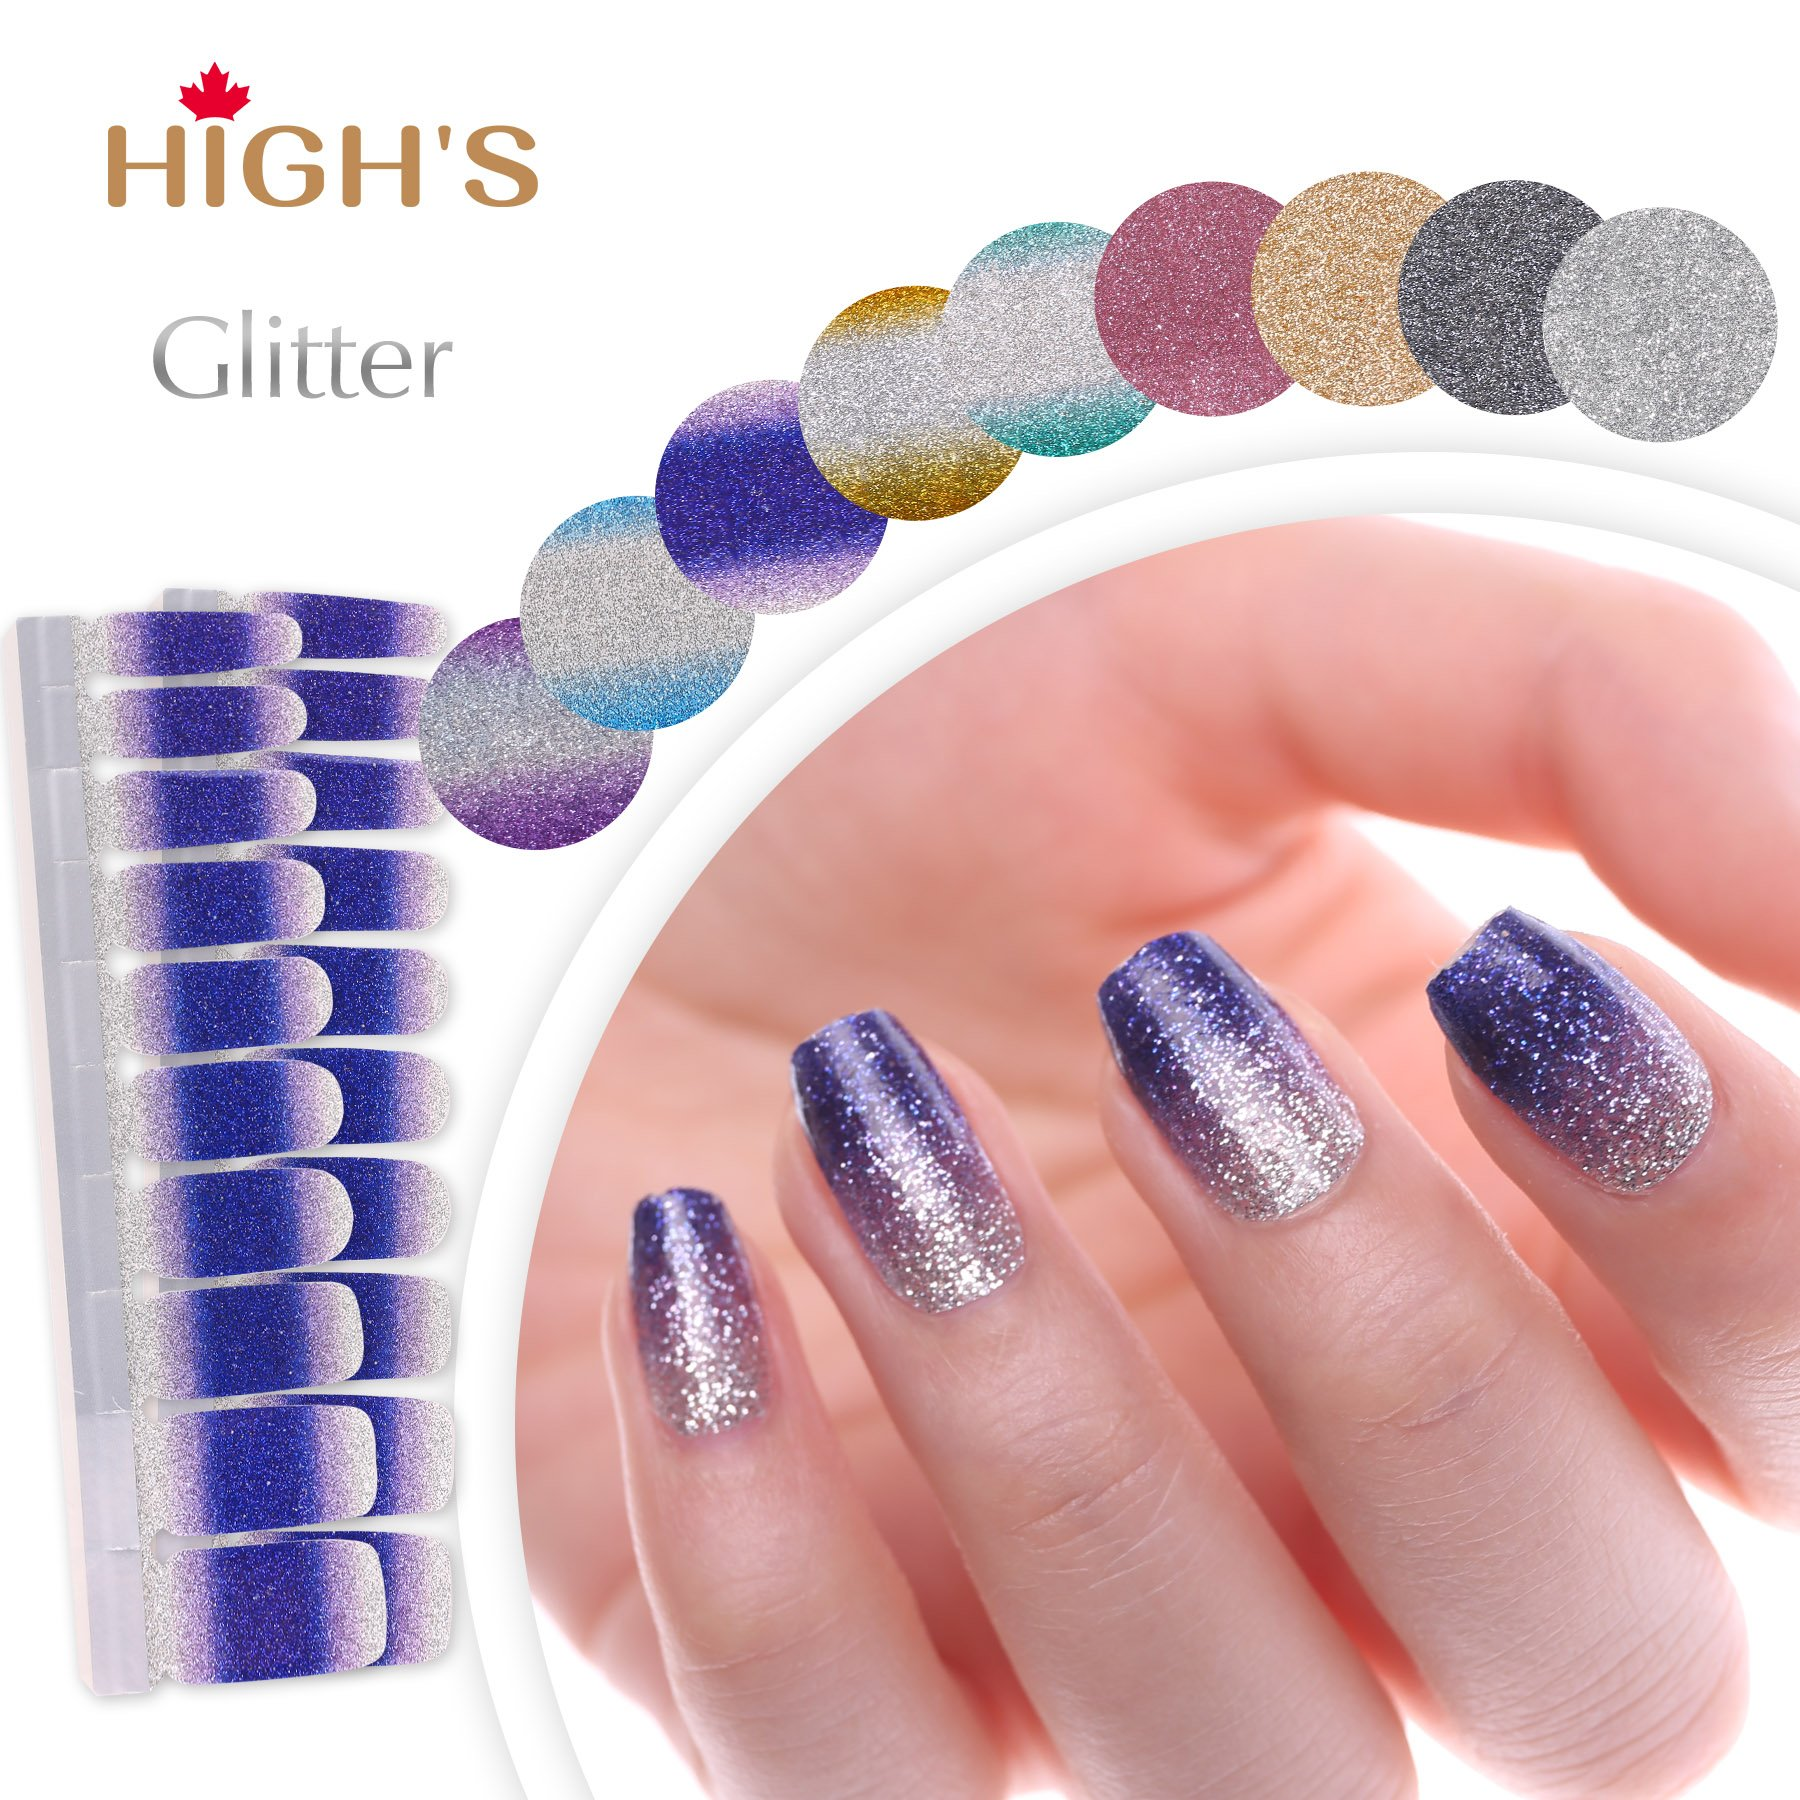 HIGH'S EXTRE ADHESION 20pcs Nail Art Transfer Decals Sticker Glitter Series The Cocktail Collection Manicure DIY Nail Polish Strips Wraps for Wedding,Party,Shopping,Travelling (Purple Rain)